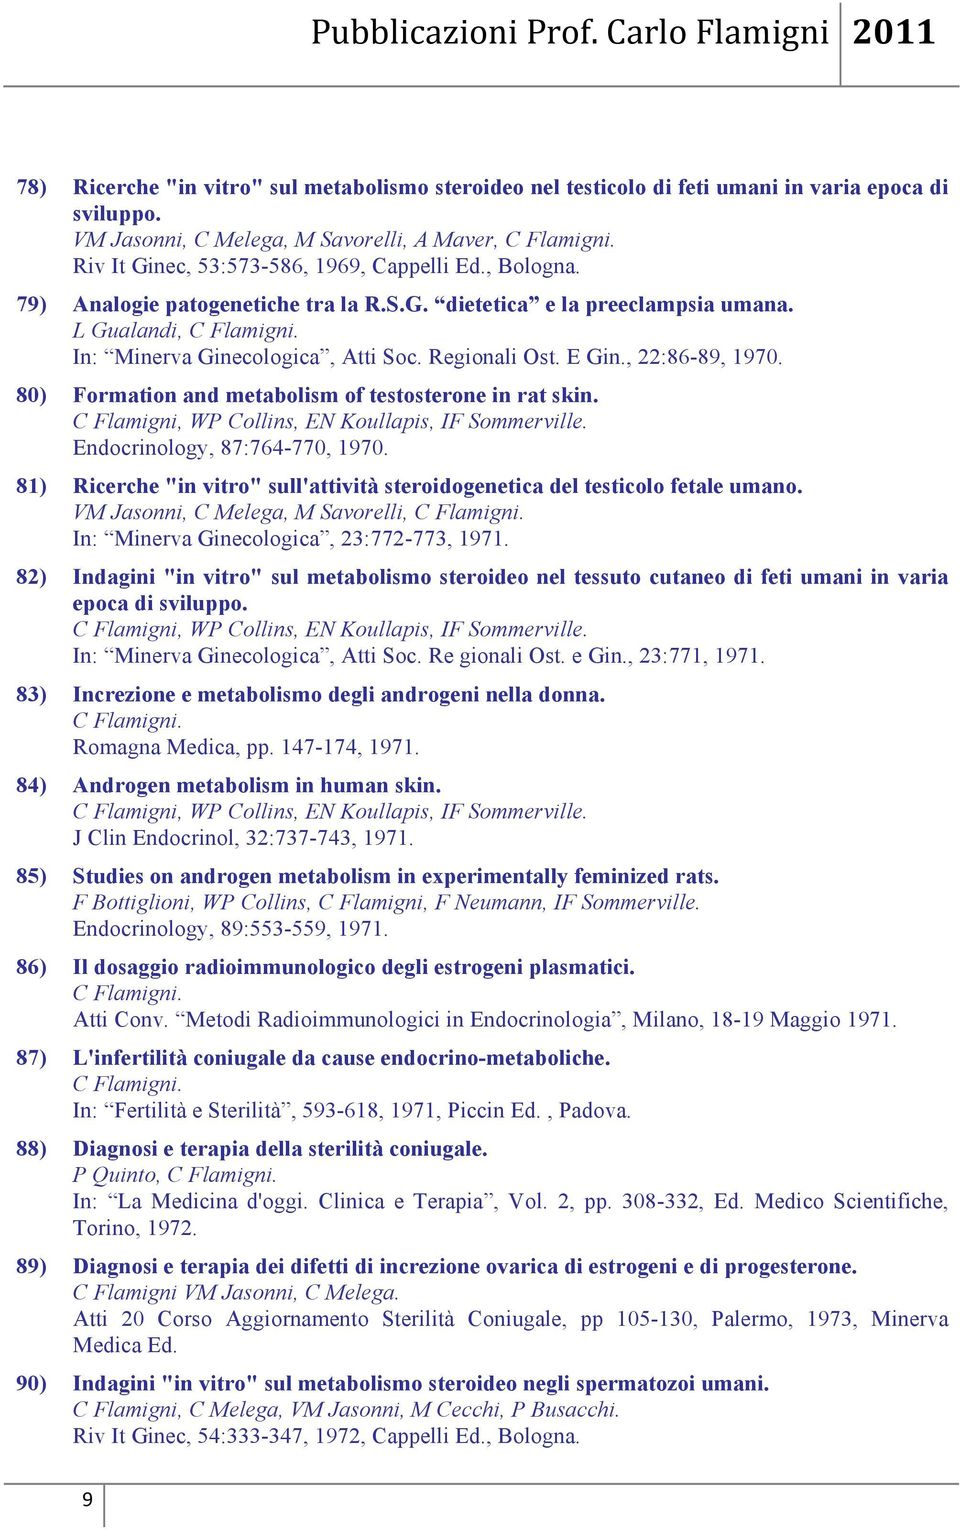 Regionali Ost. E Gin., 22:86-89, 1970. 80) Formation and metabolism of testosterone in rat skin. C Flamigni, WP Collins, EN Koullapis, IF Sommerville. Endocrinology, 87:764-770, 1970.